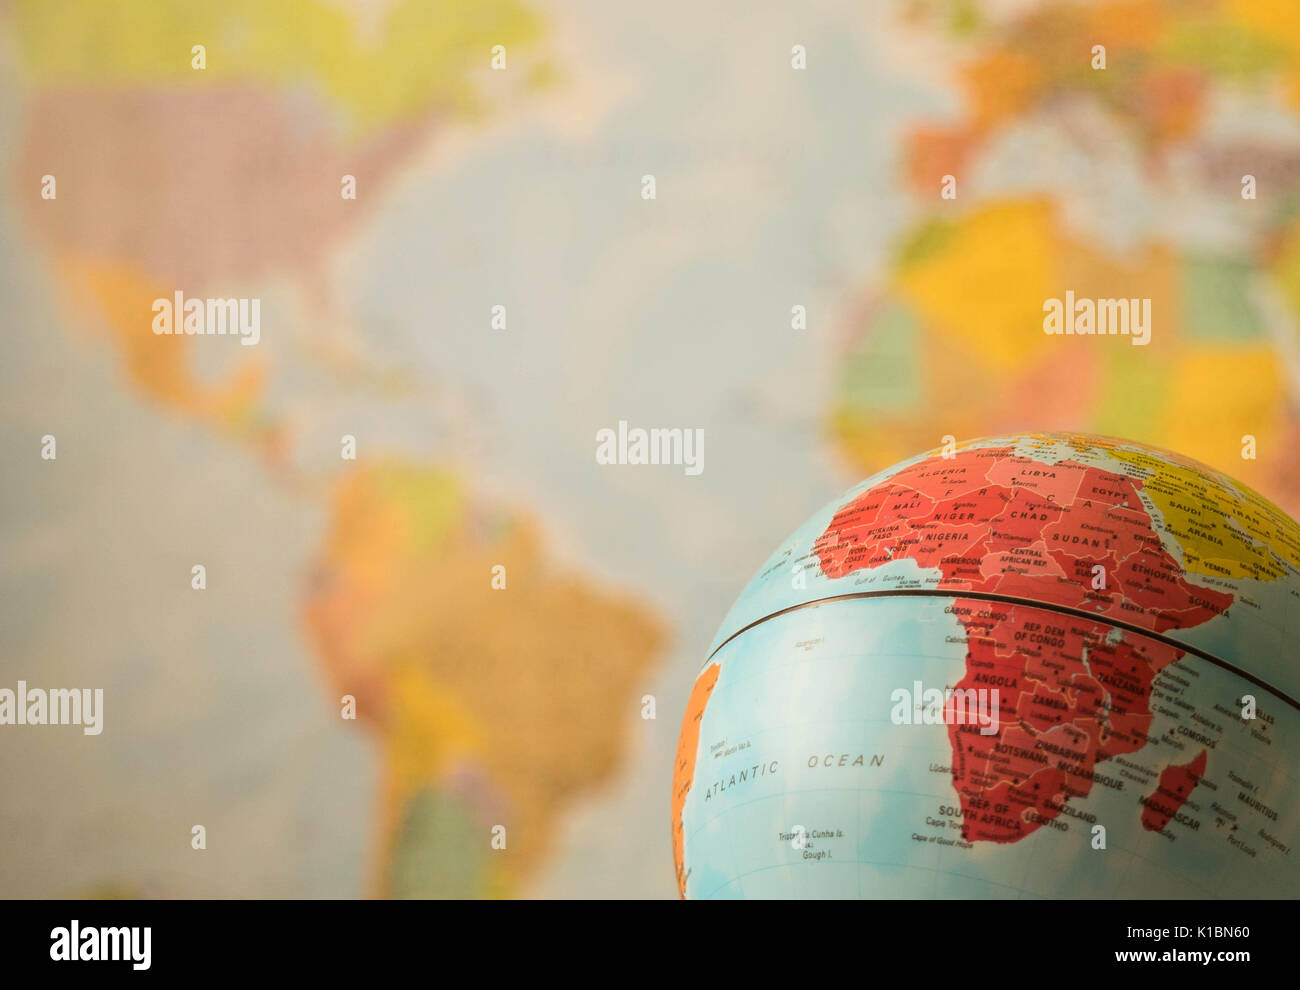 Africa Map Background.Africa Map On A Globe With The Whole World As Background Stock Photo